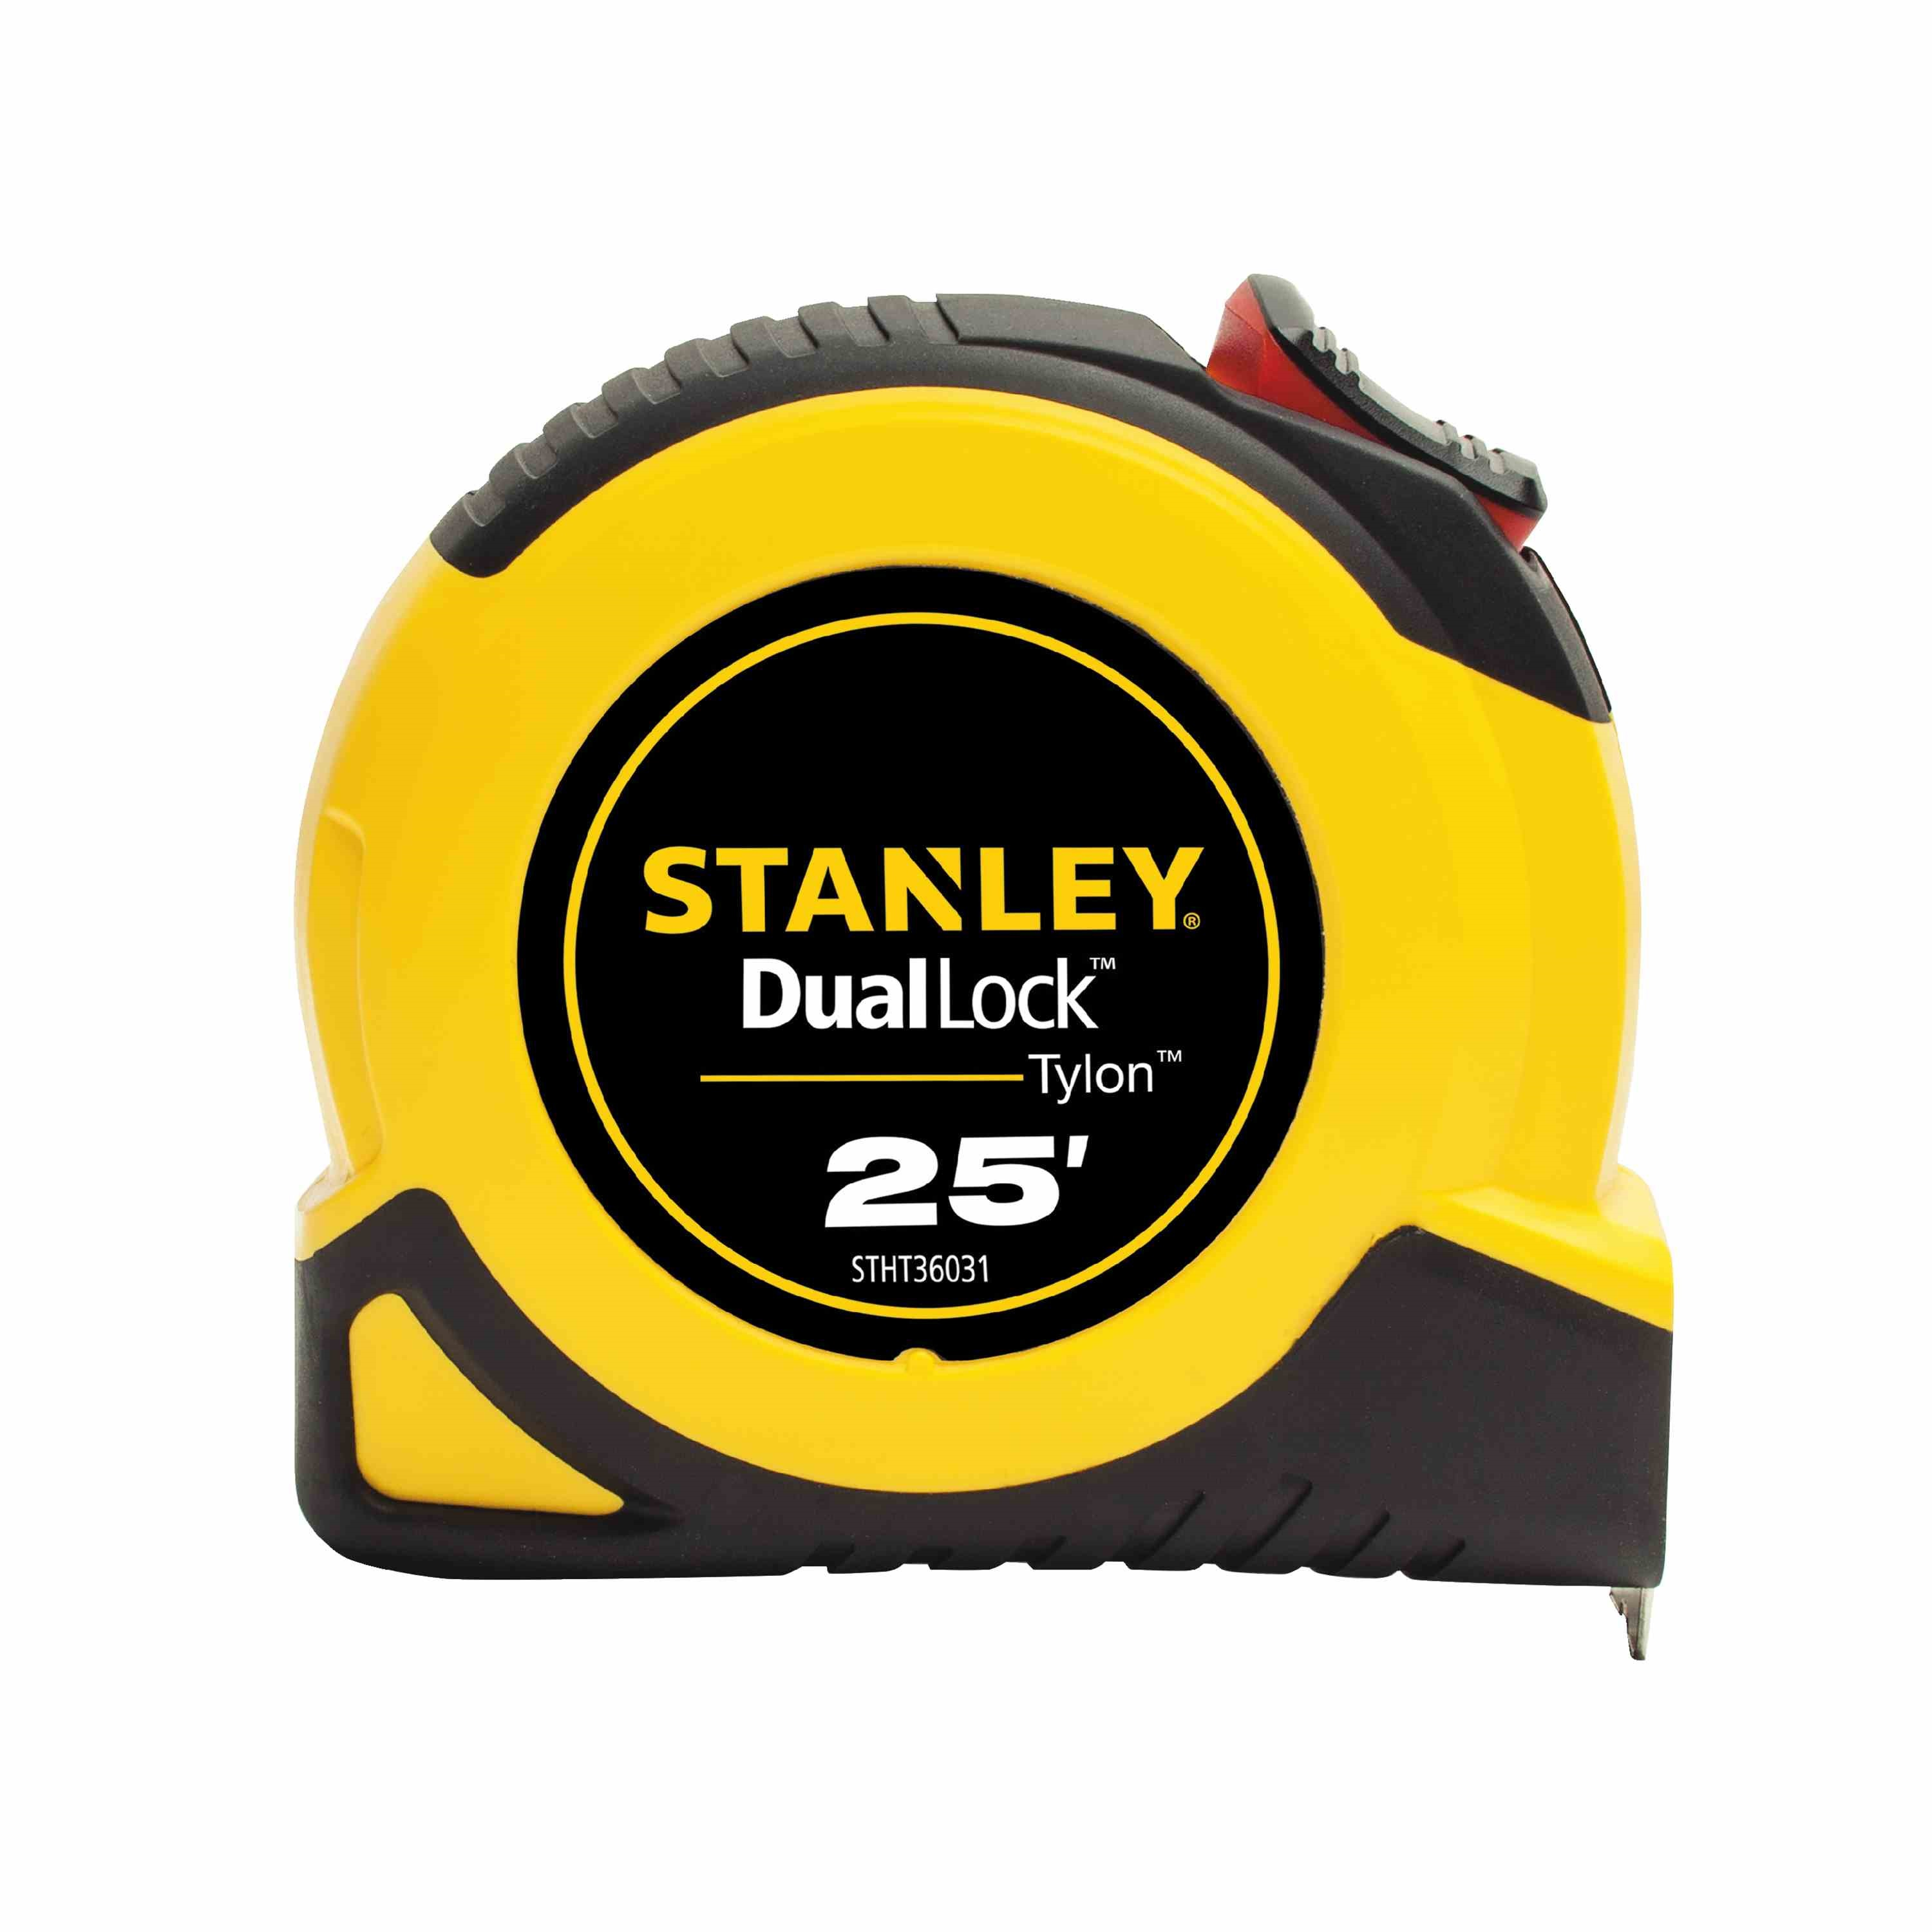 Stanley Tools - 25 ft DualLock Tape Measure - STHT36031S